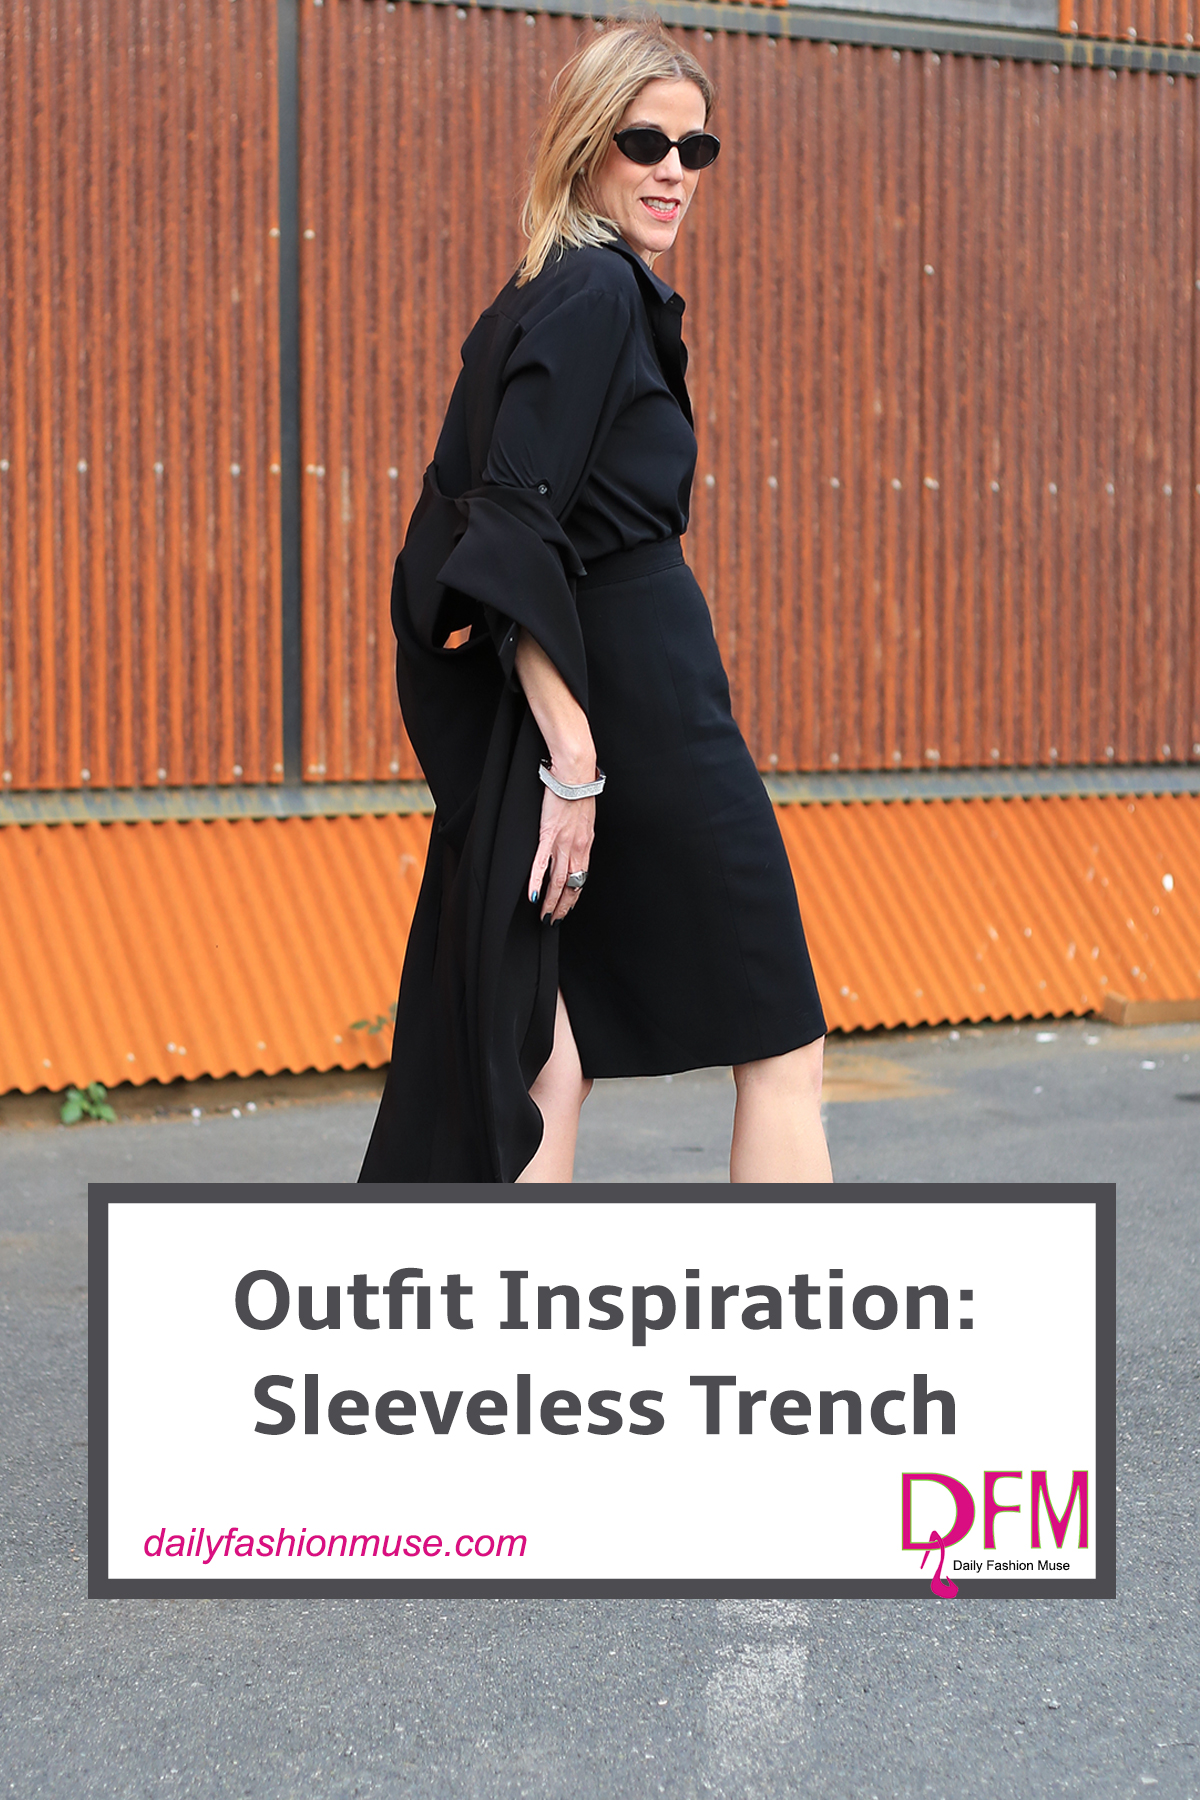 Try a sleeveless trench instead of a blazer with your next outfit. It is unexpected, sophisticated and adds some edginess to your look.